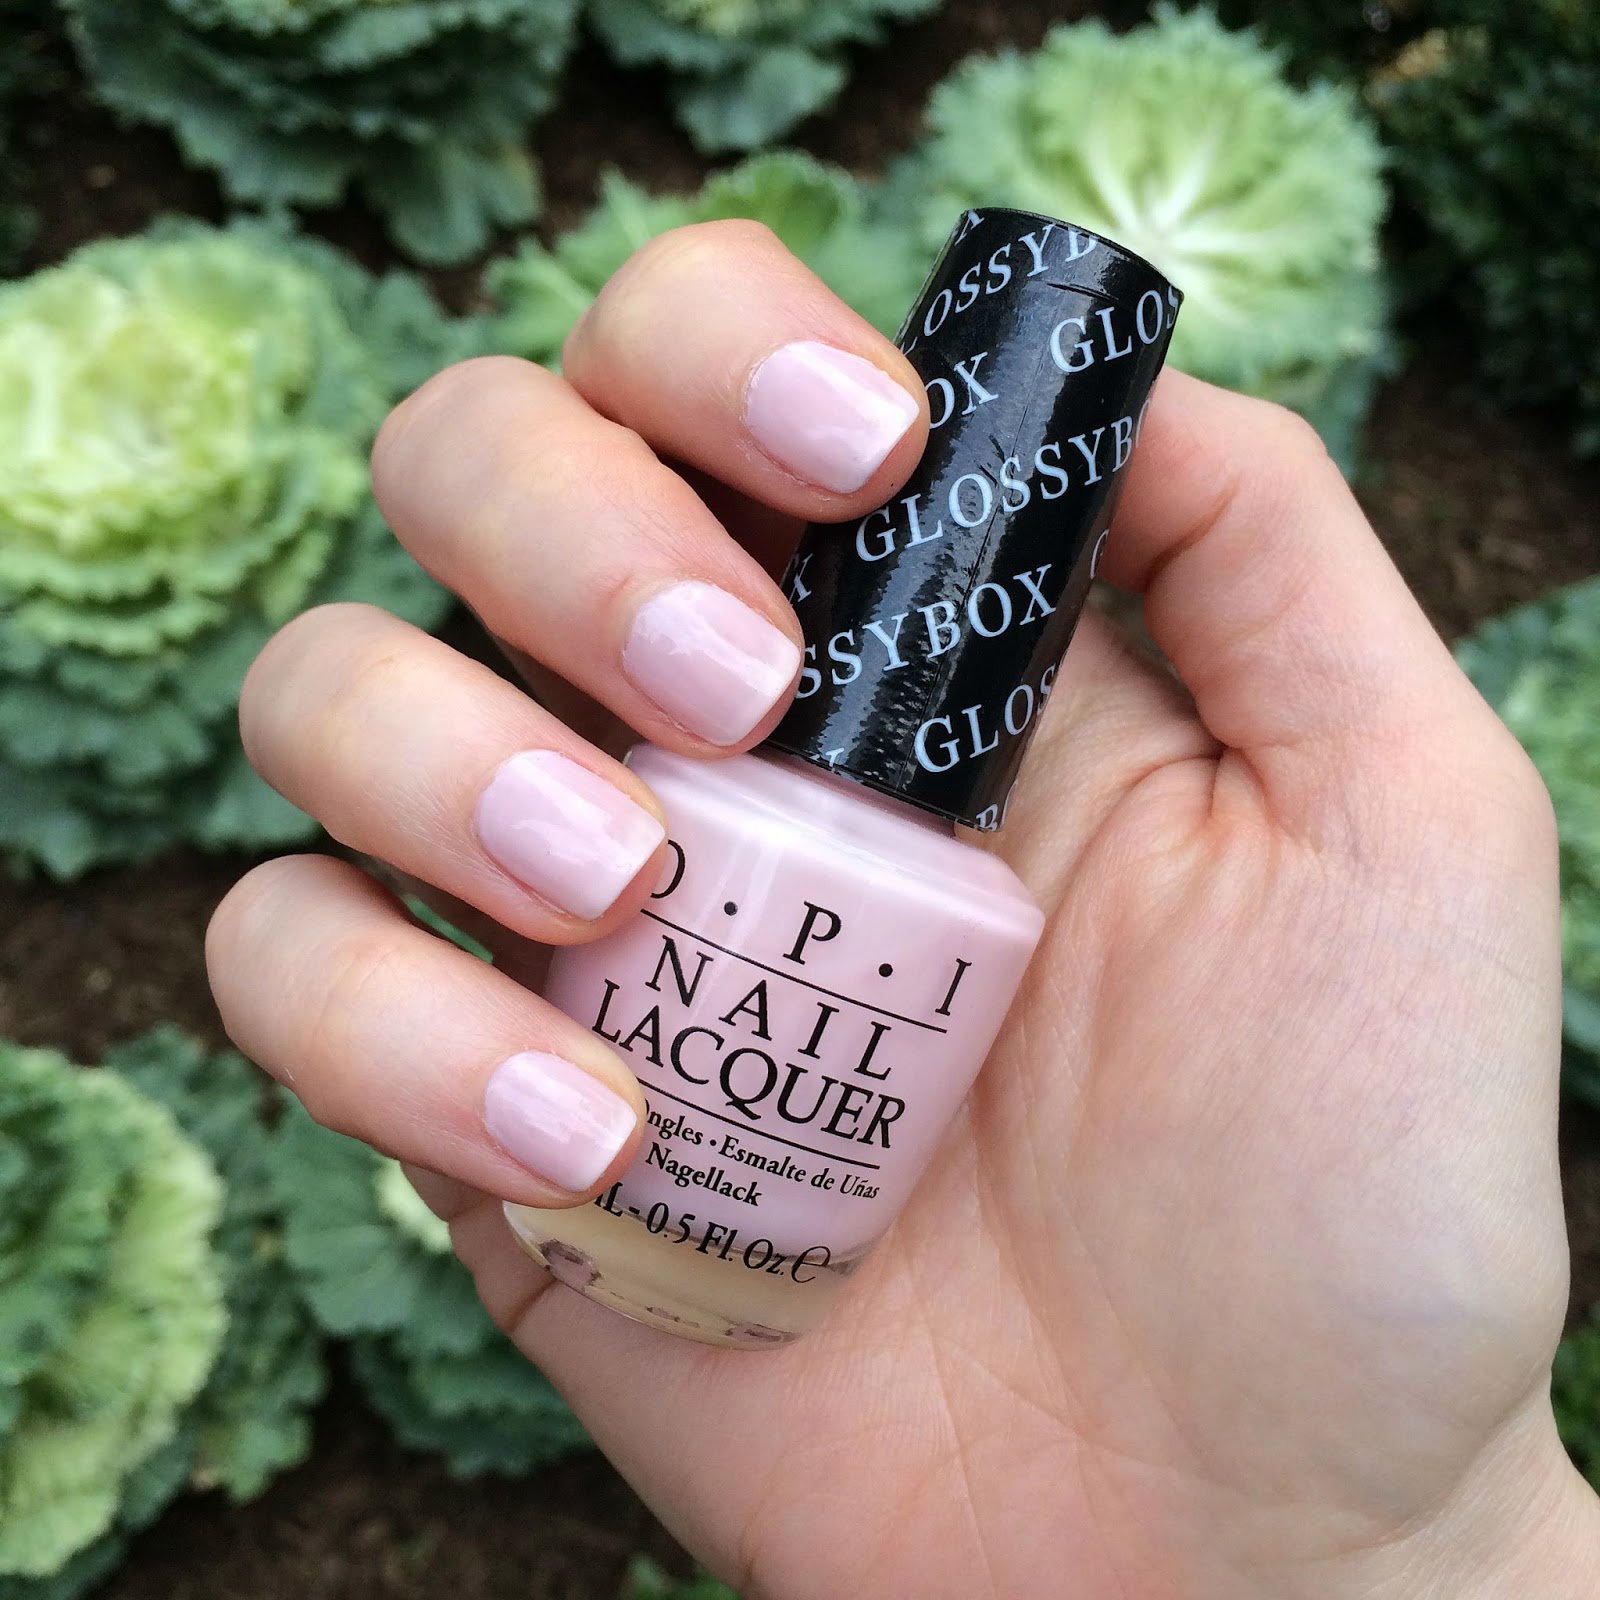 OPI x Glossybox swatches